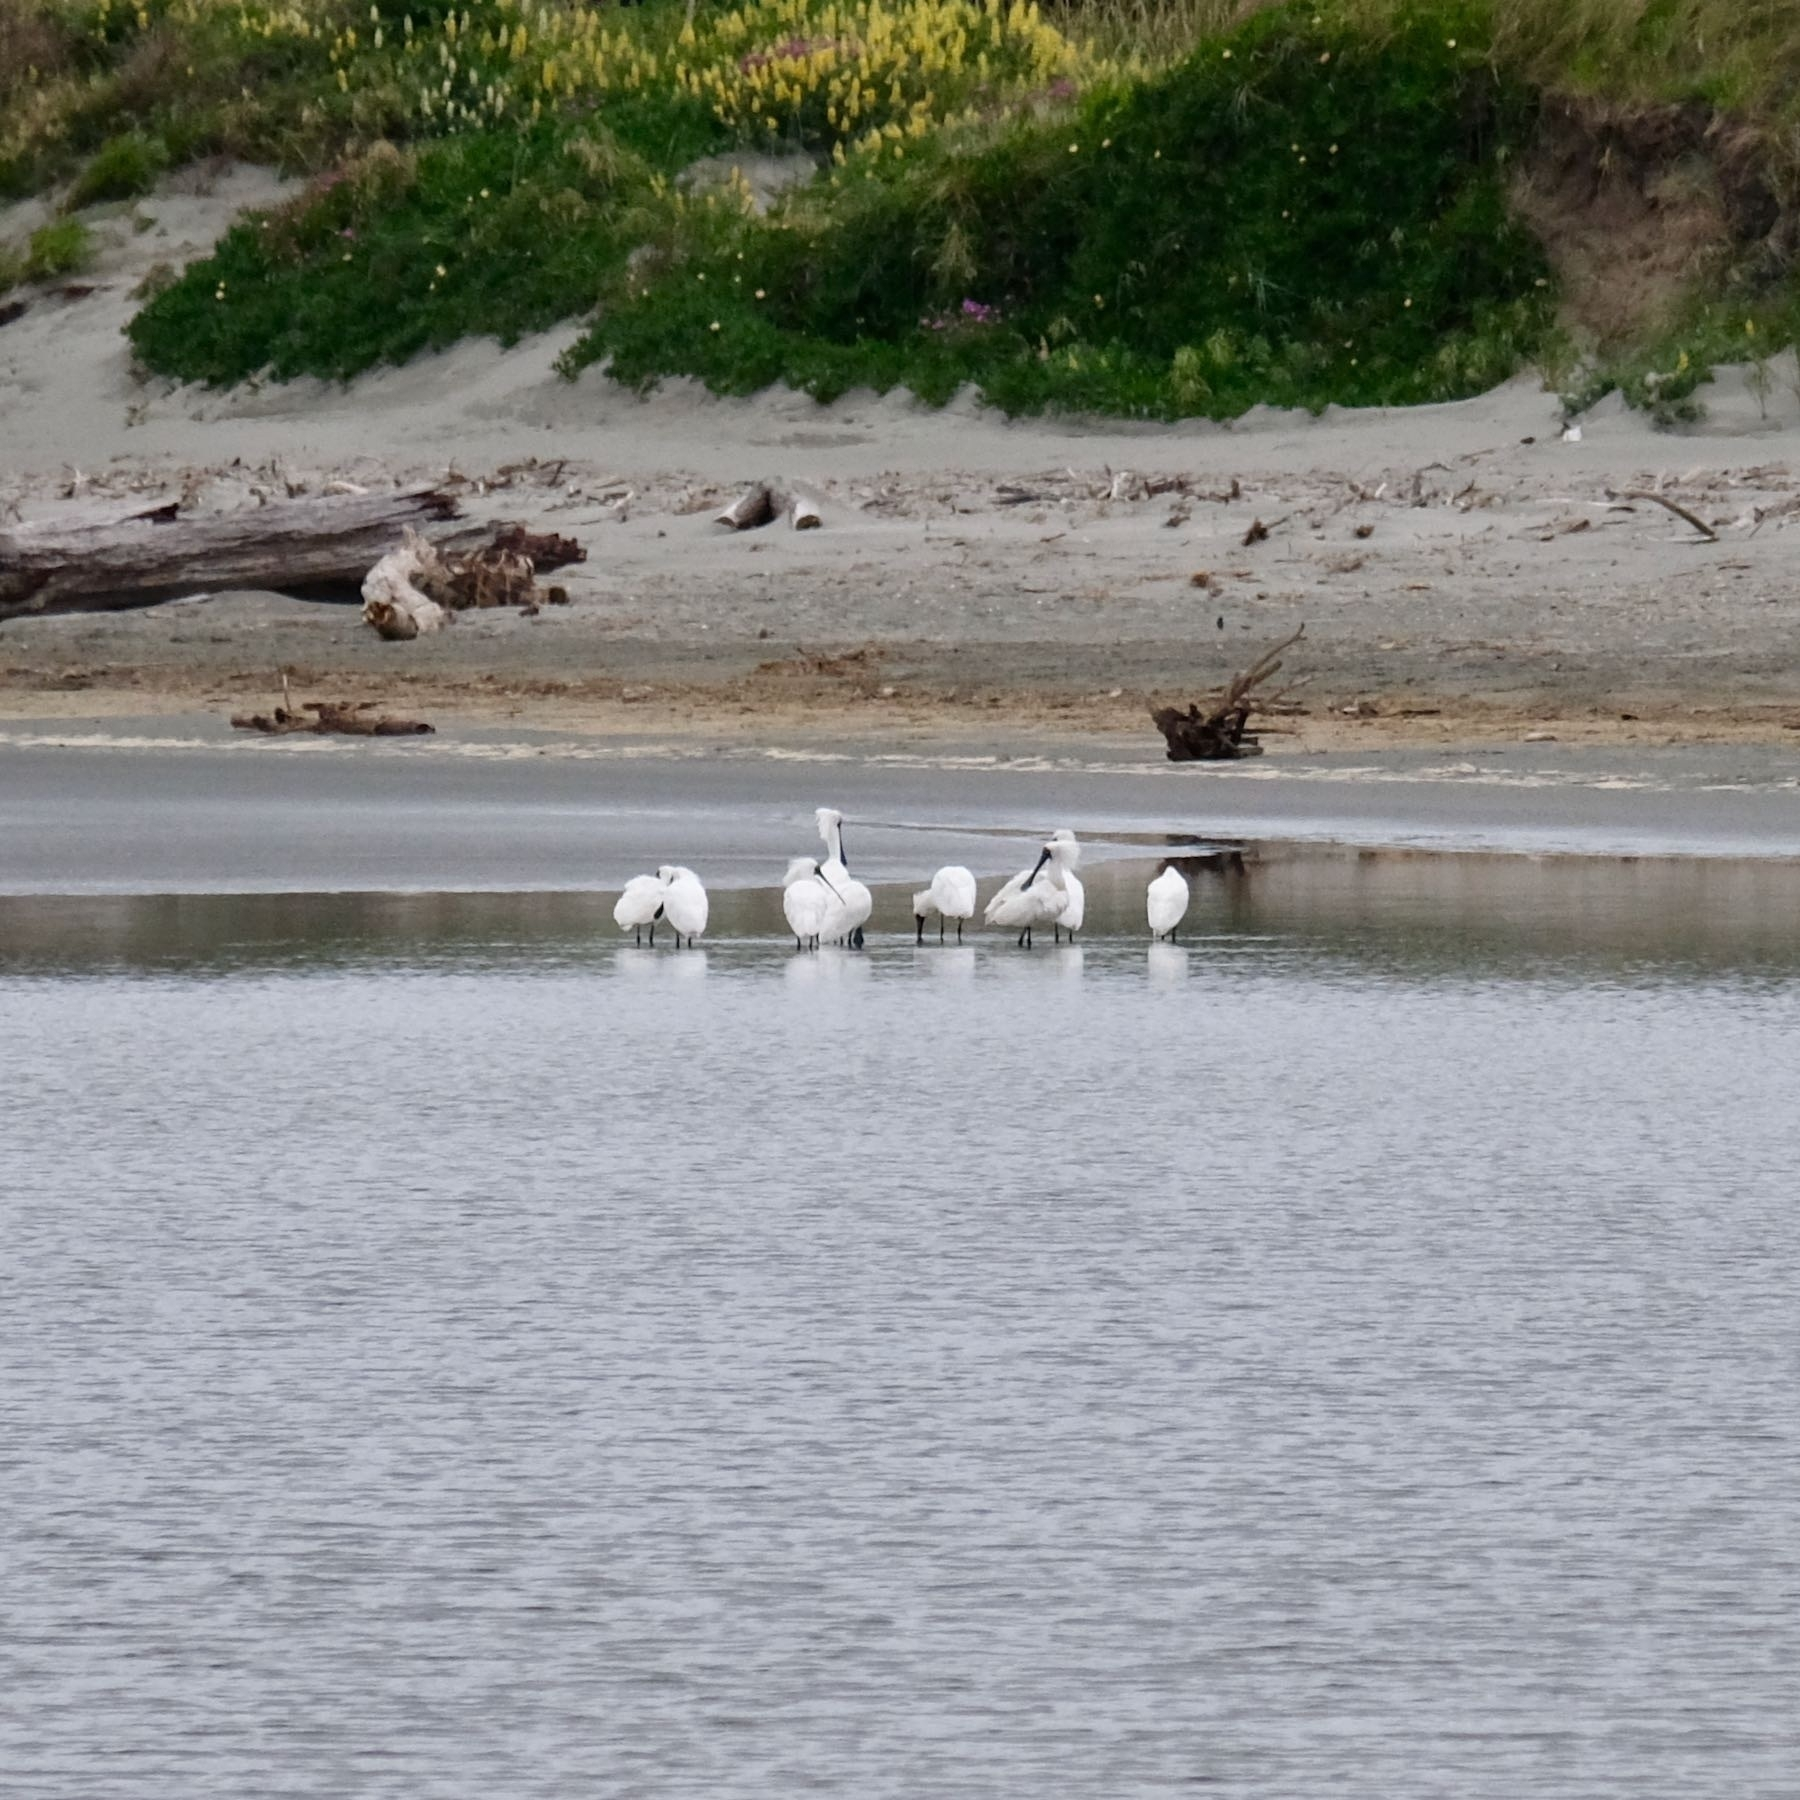 9 large white birds in shallow estuary water.